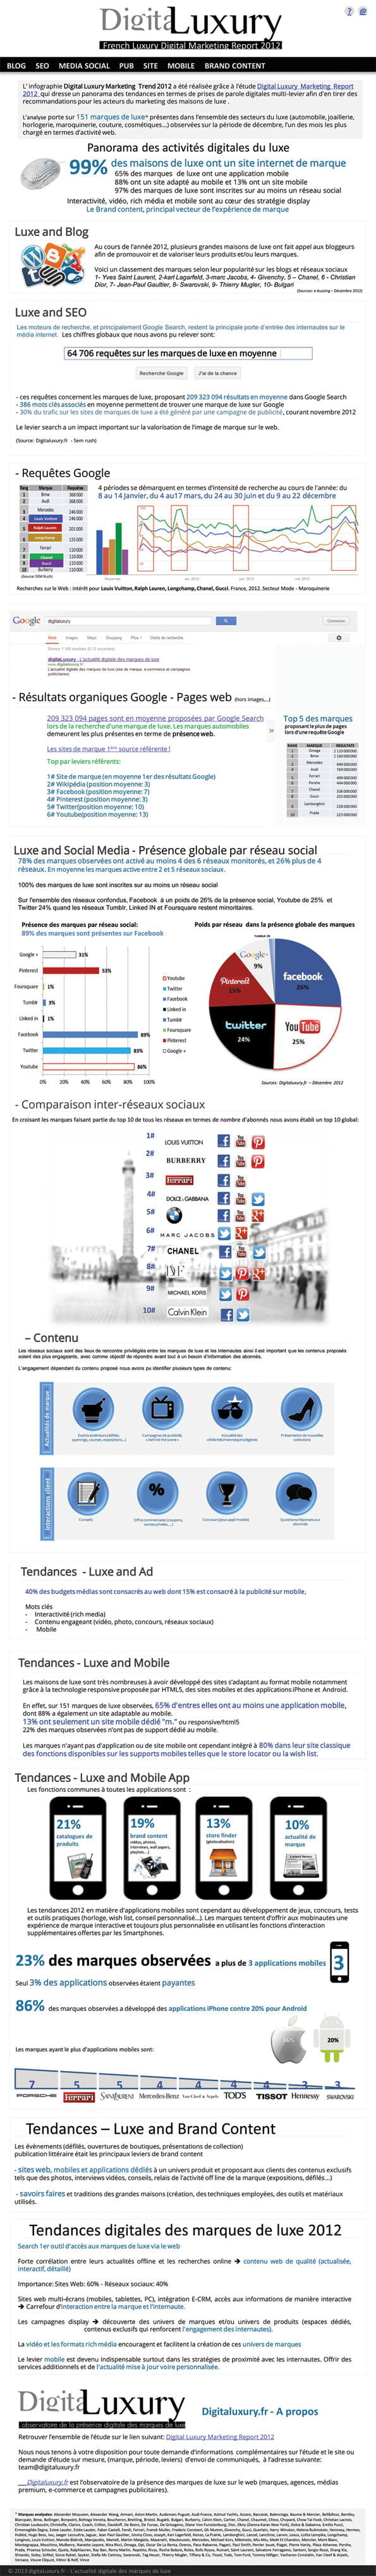 infographie les donn es cl s du luxe sur le digital par digitaluxury jdn. Black Bedroom Furniture Sets. Home Design Ideas